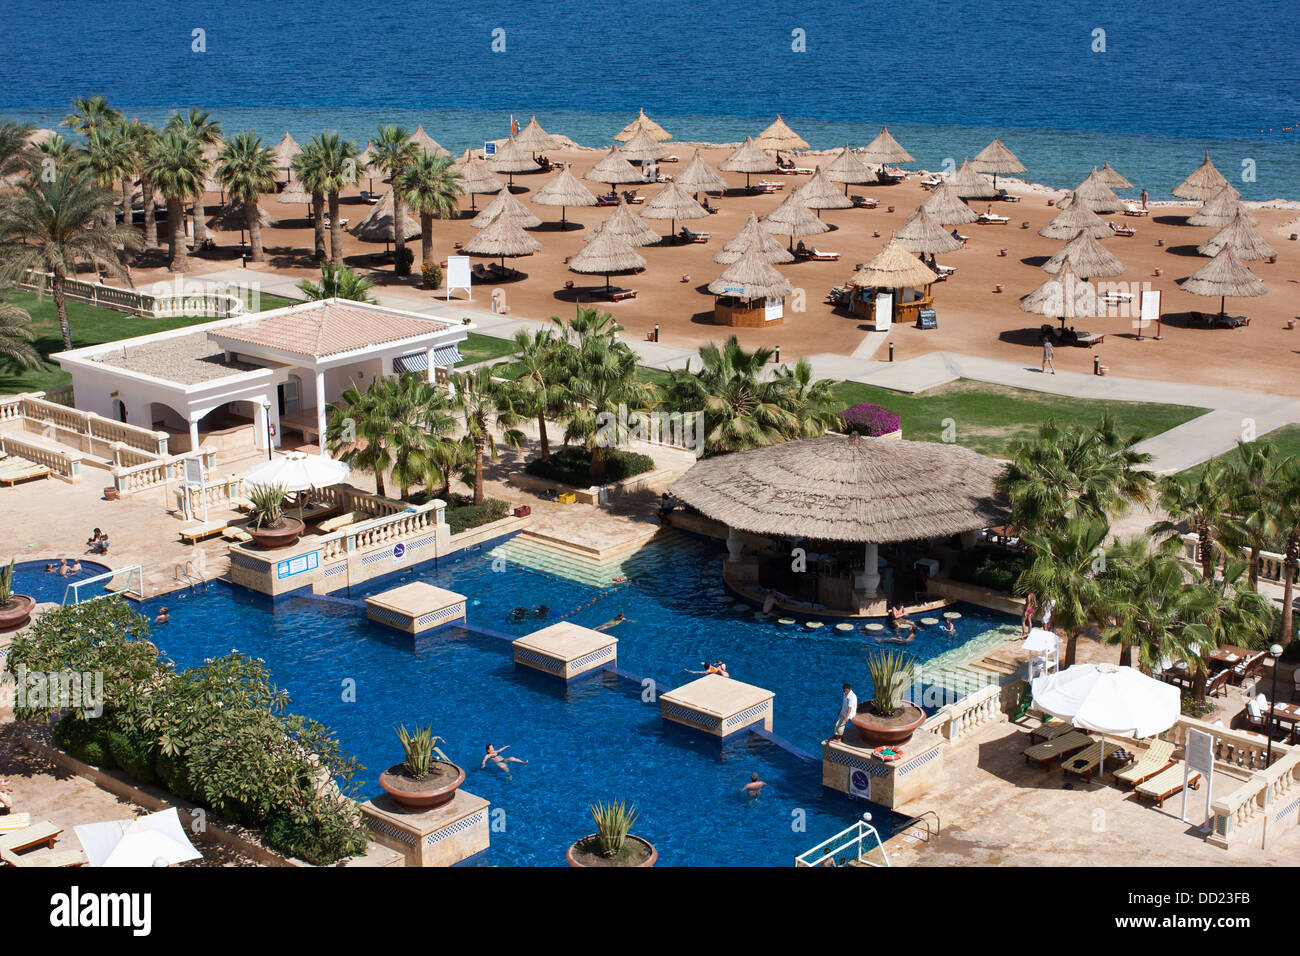 View of a beach at Sharm el-Sheikh, Egypt - Stock Image